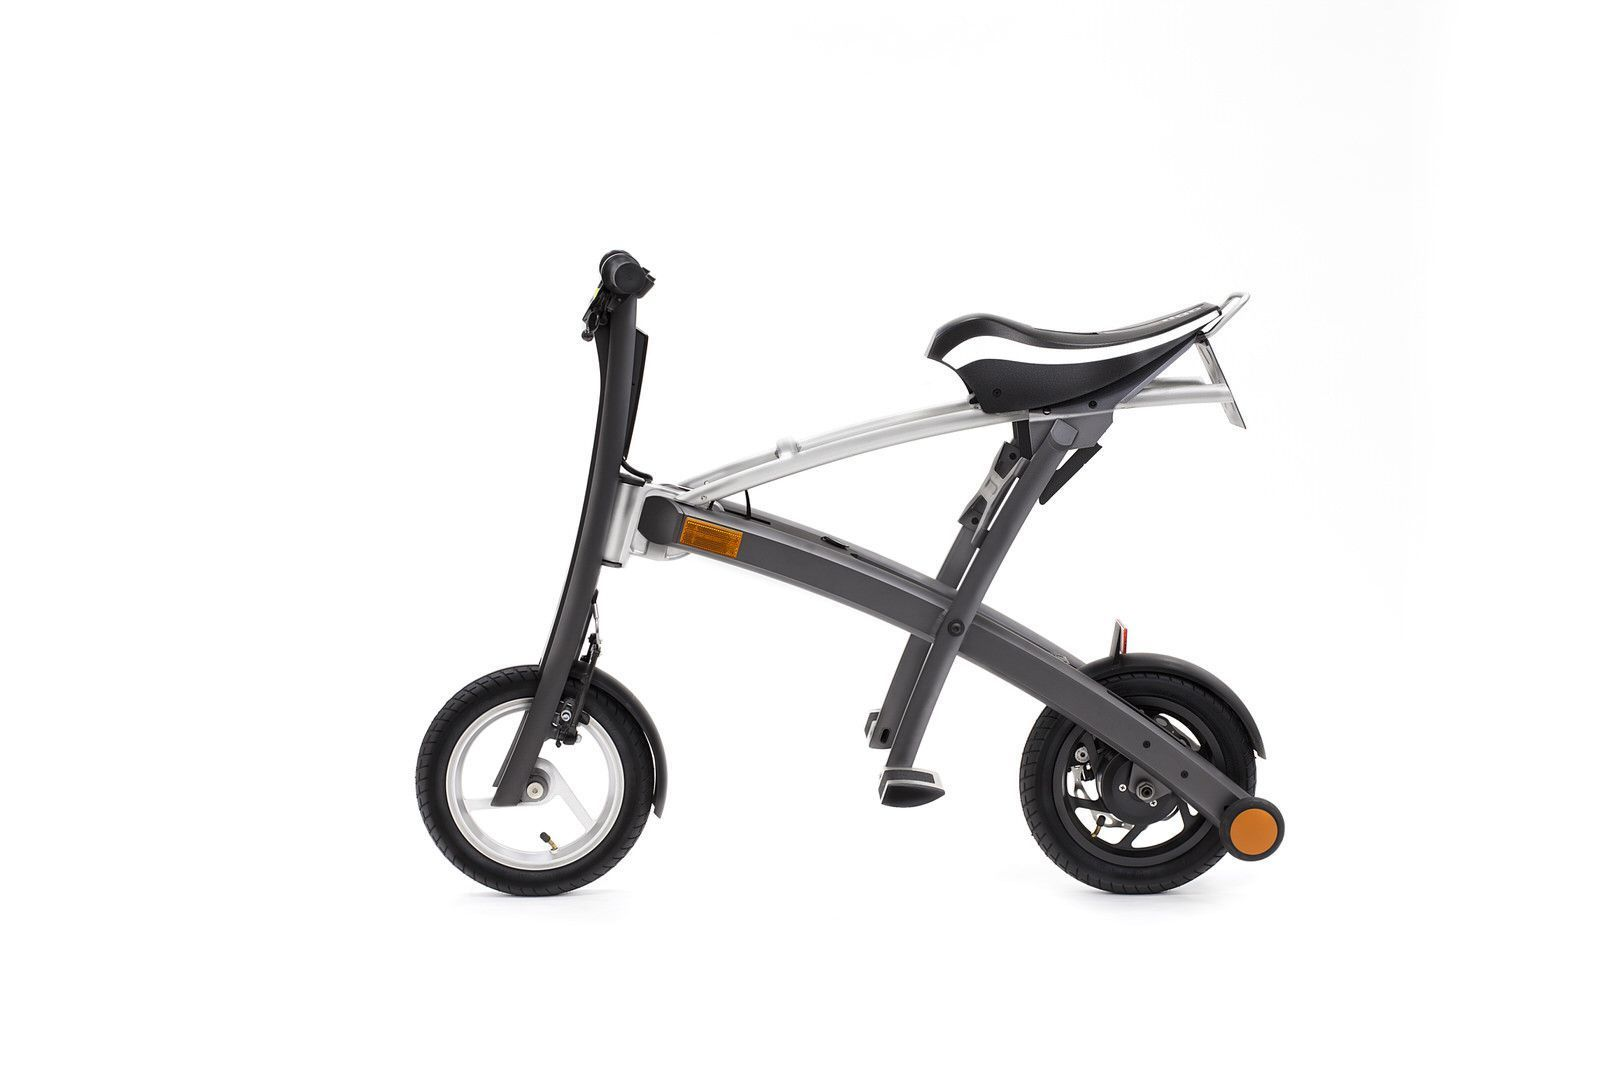 Stigo e-scooter with seat